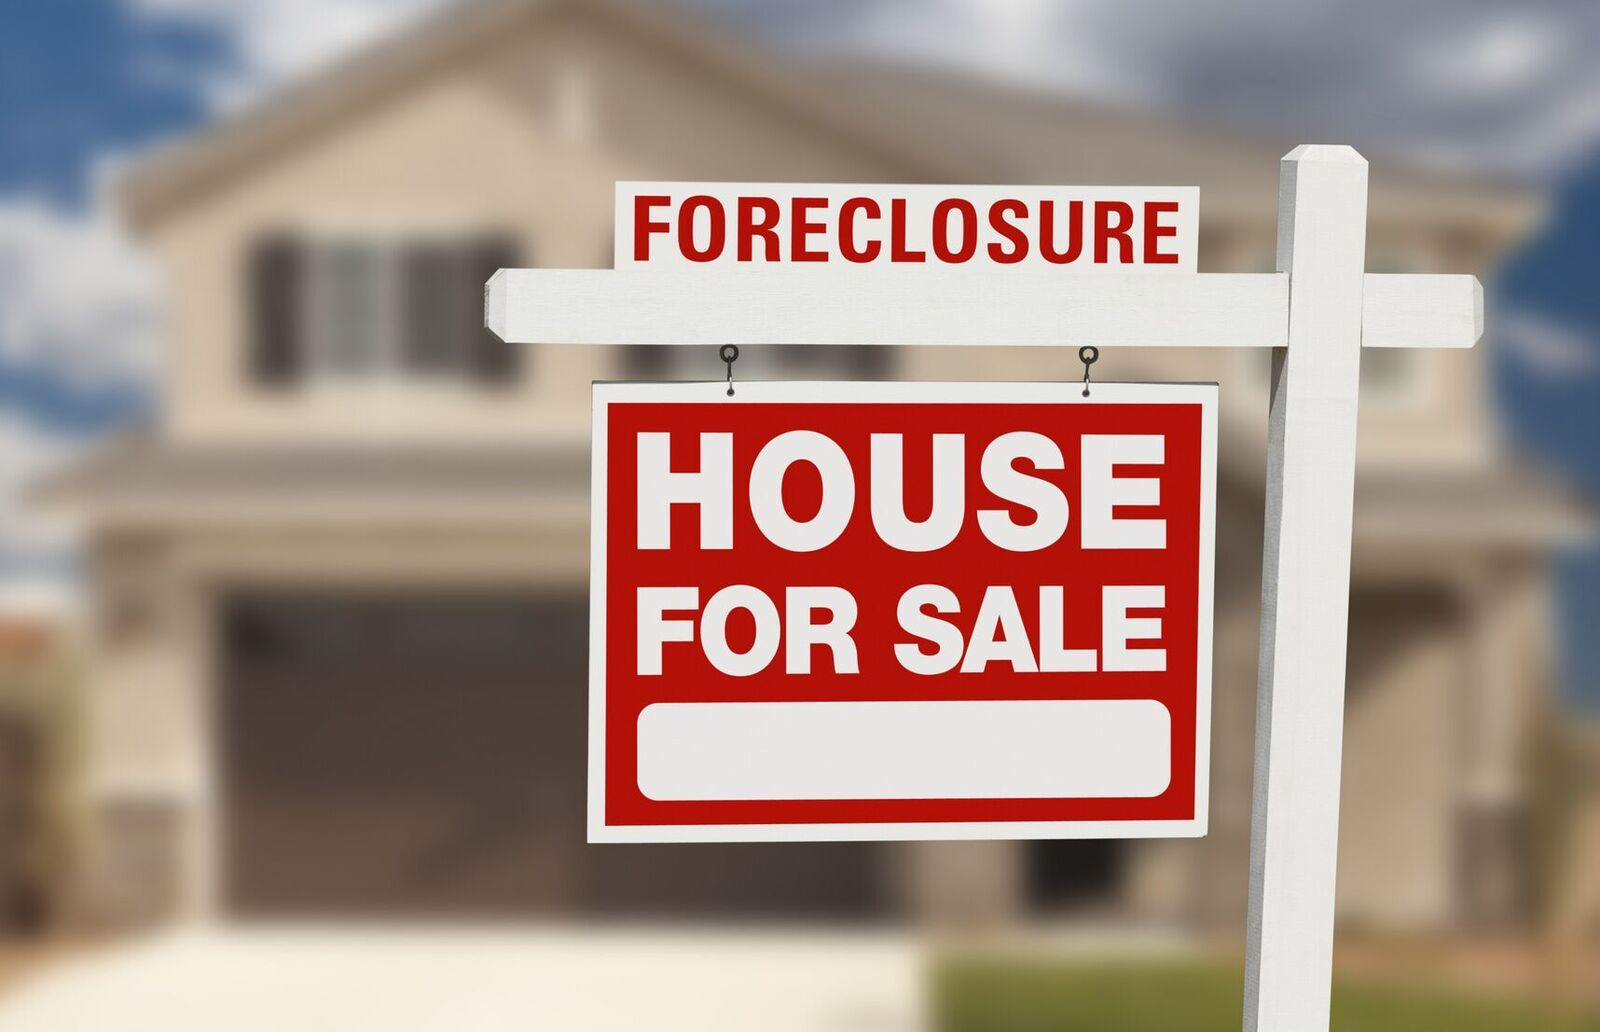 Are You Having Trouble Making House Payments Or Facing Foreclosure Avoid Foreclosure Call Us And We Flipping Houses Real Estate Marketing Distressed Property